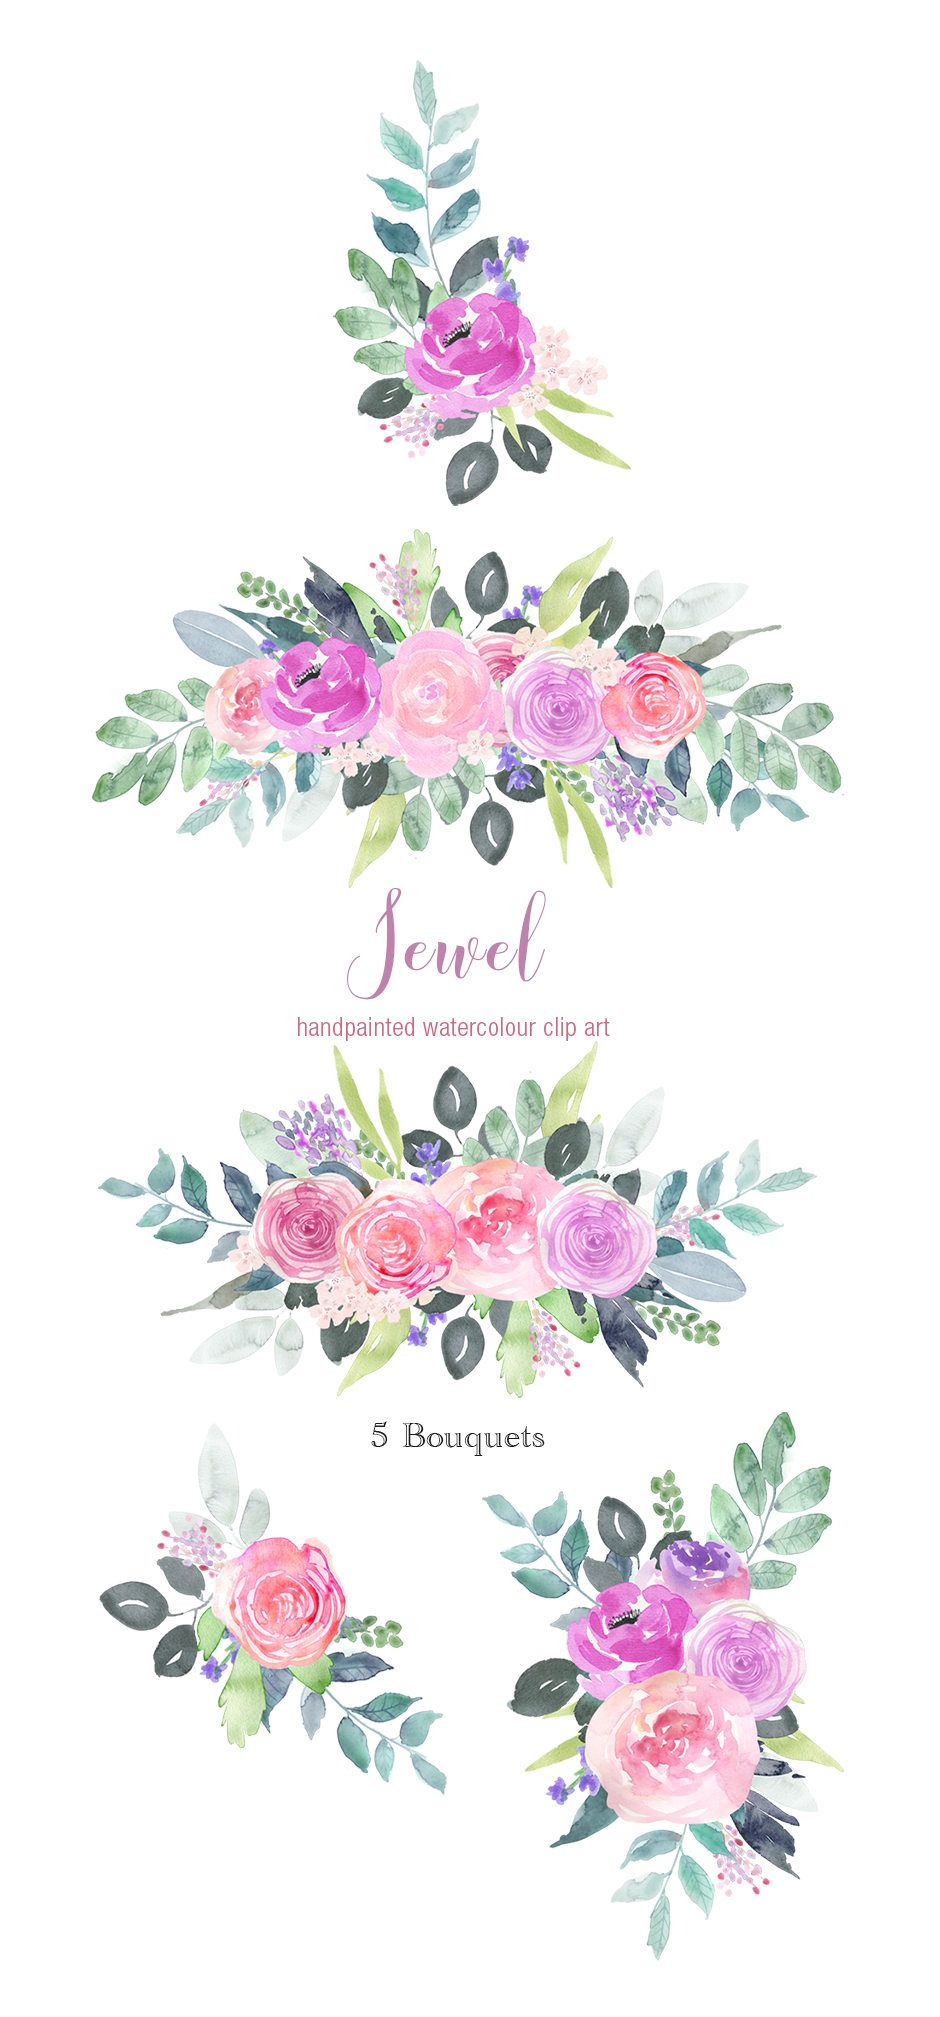 Flower and jewel cliparts graphic royalty free stock Flower Clip Art - Purple Pink Rose, Violet Floral Clipart, Digital ... graphic royalty free stock